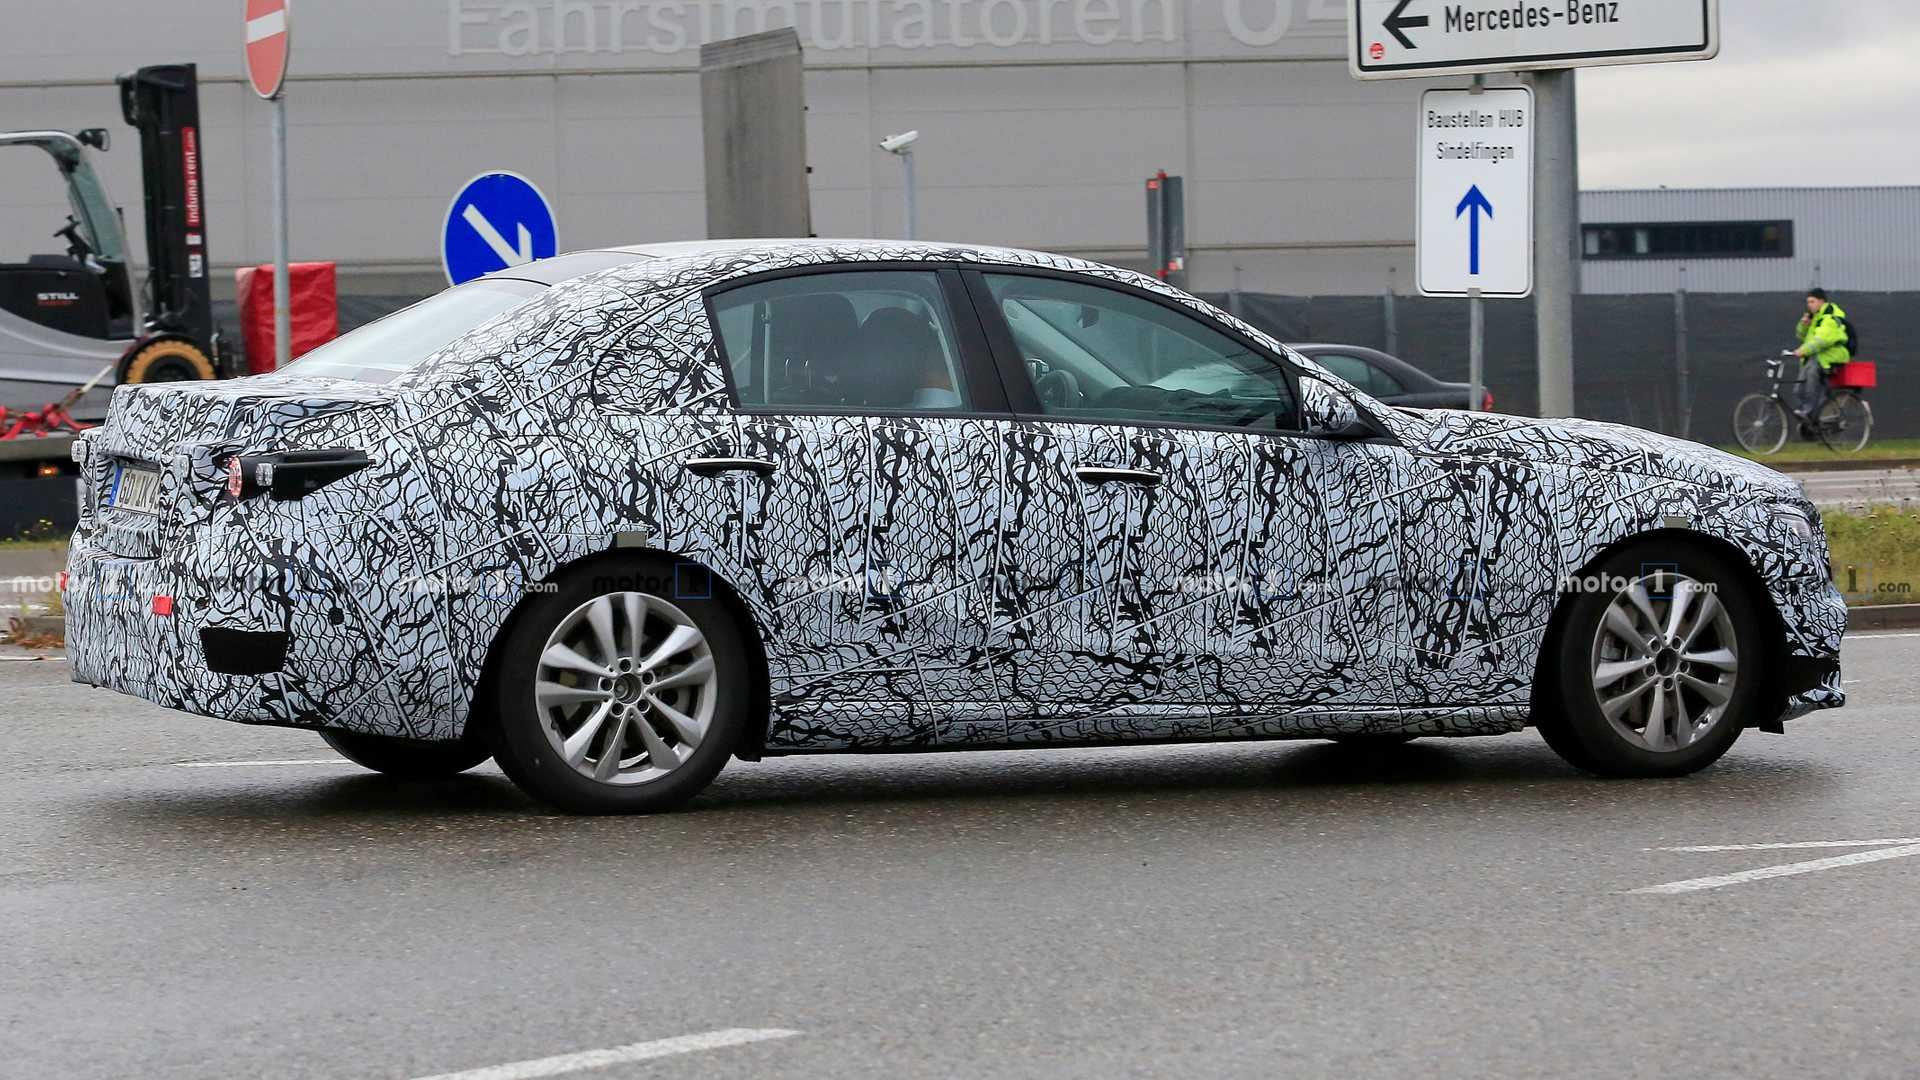 48 New 2020 Mercedes C Class Engine